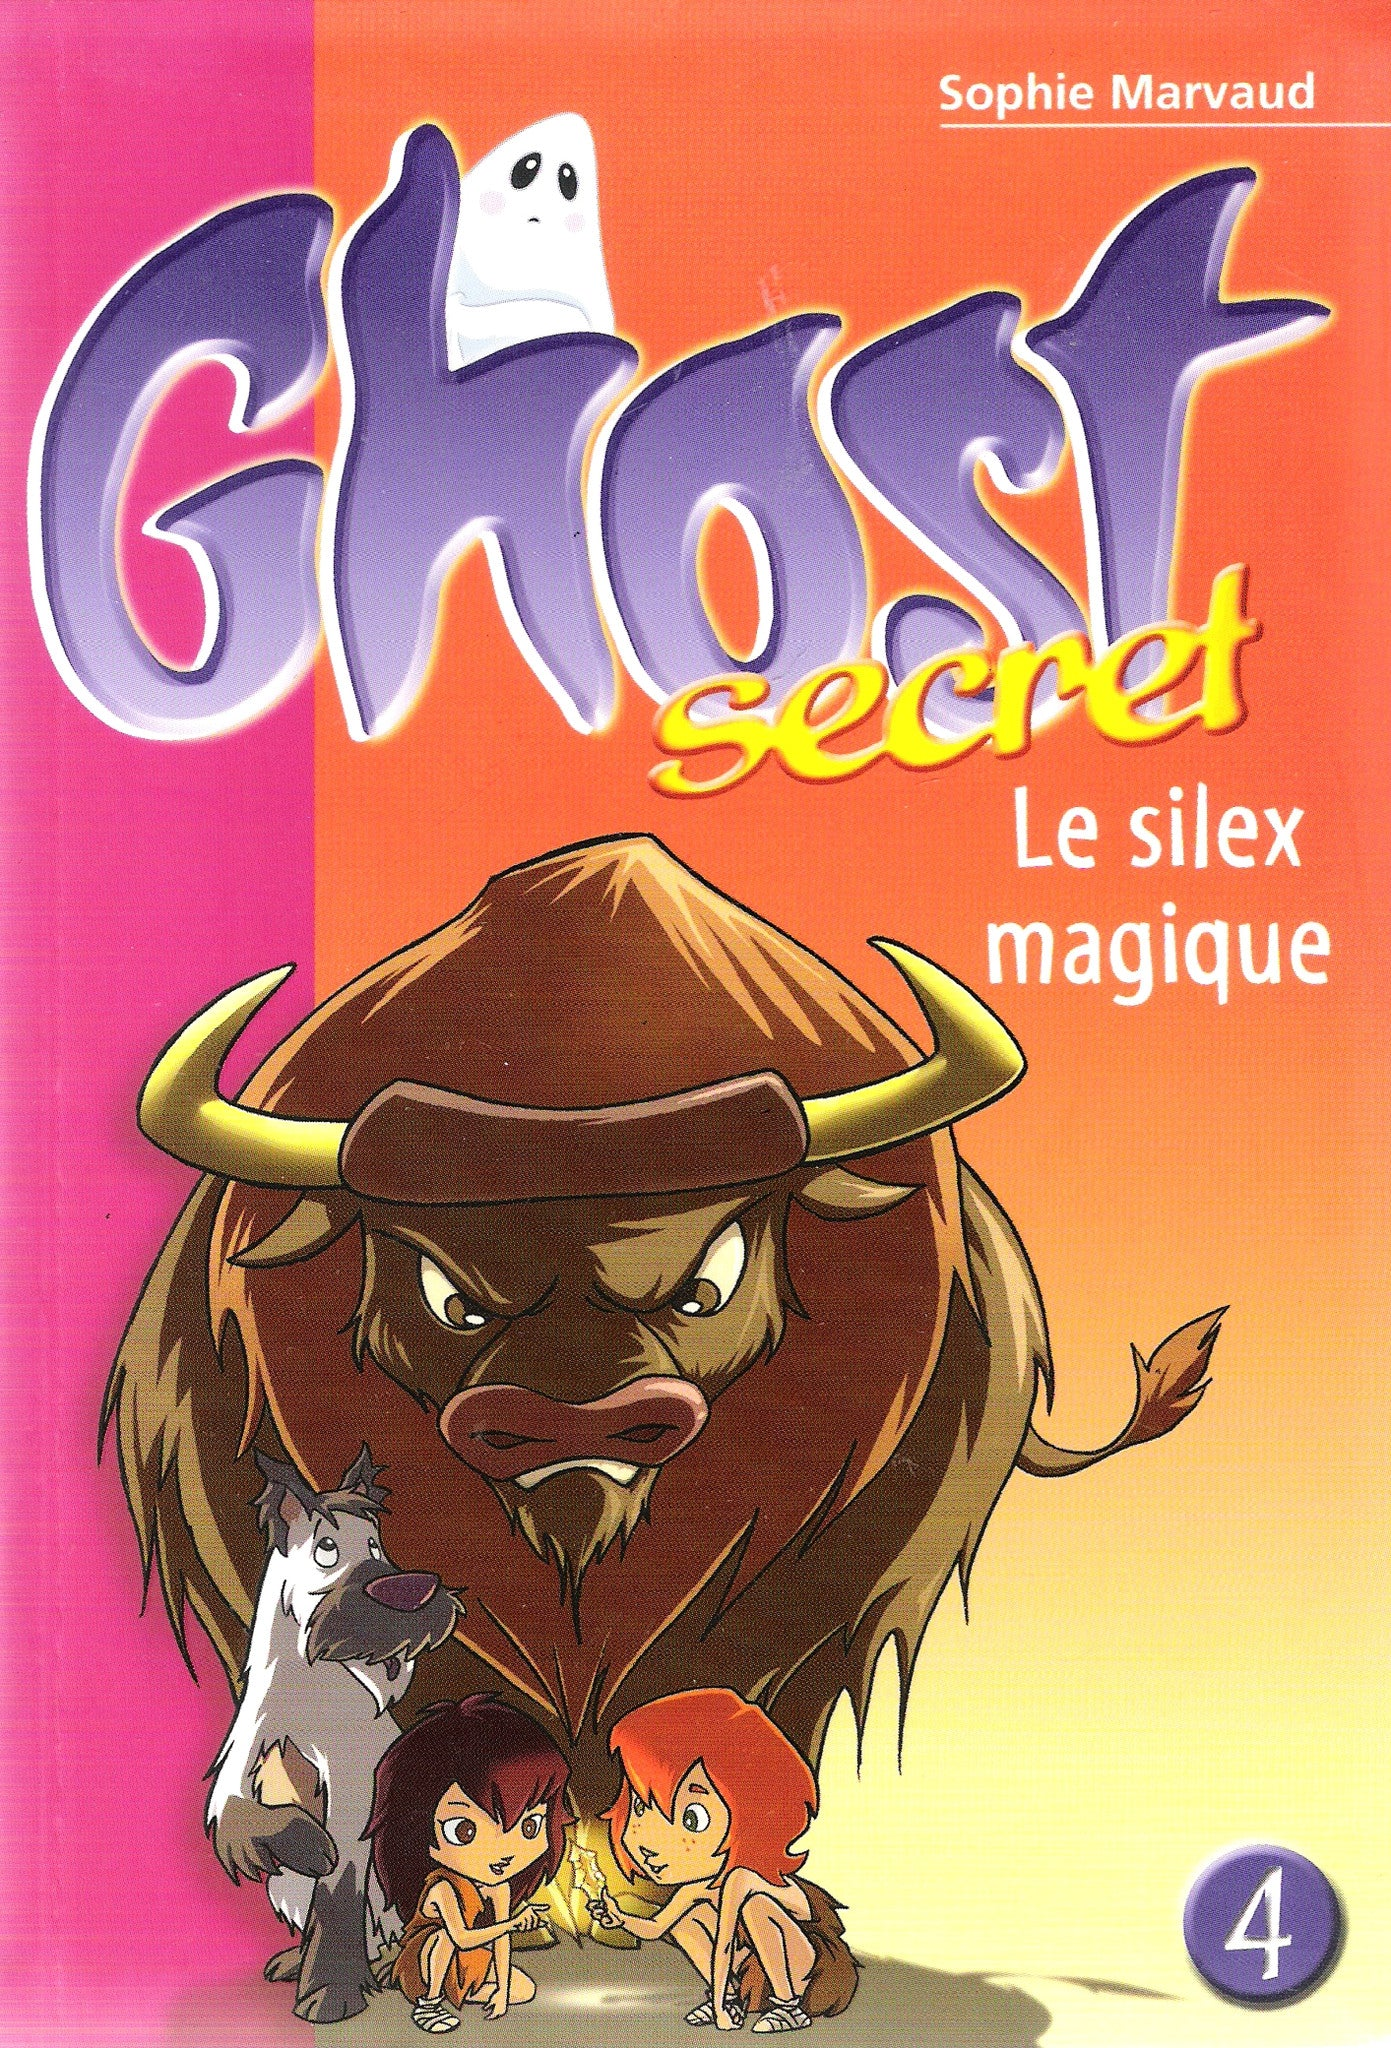 Ghost Secret #4 - Le silex magique